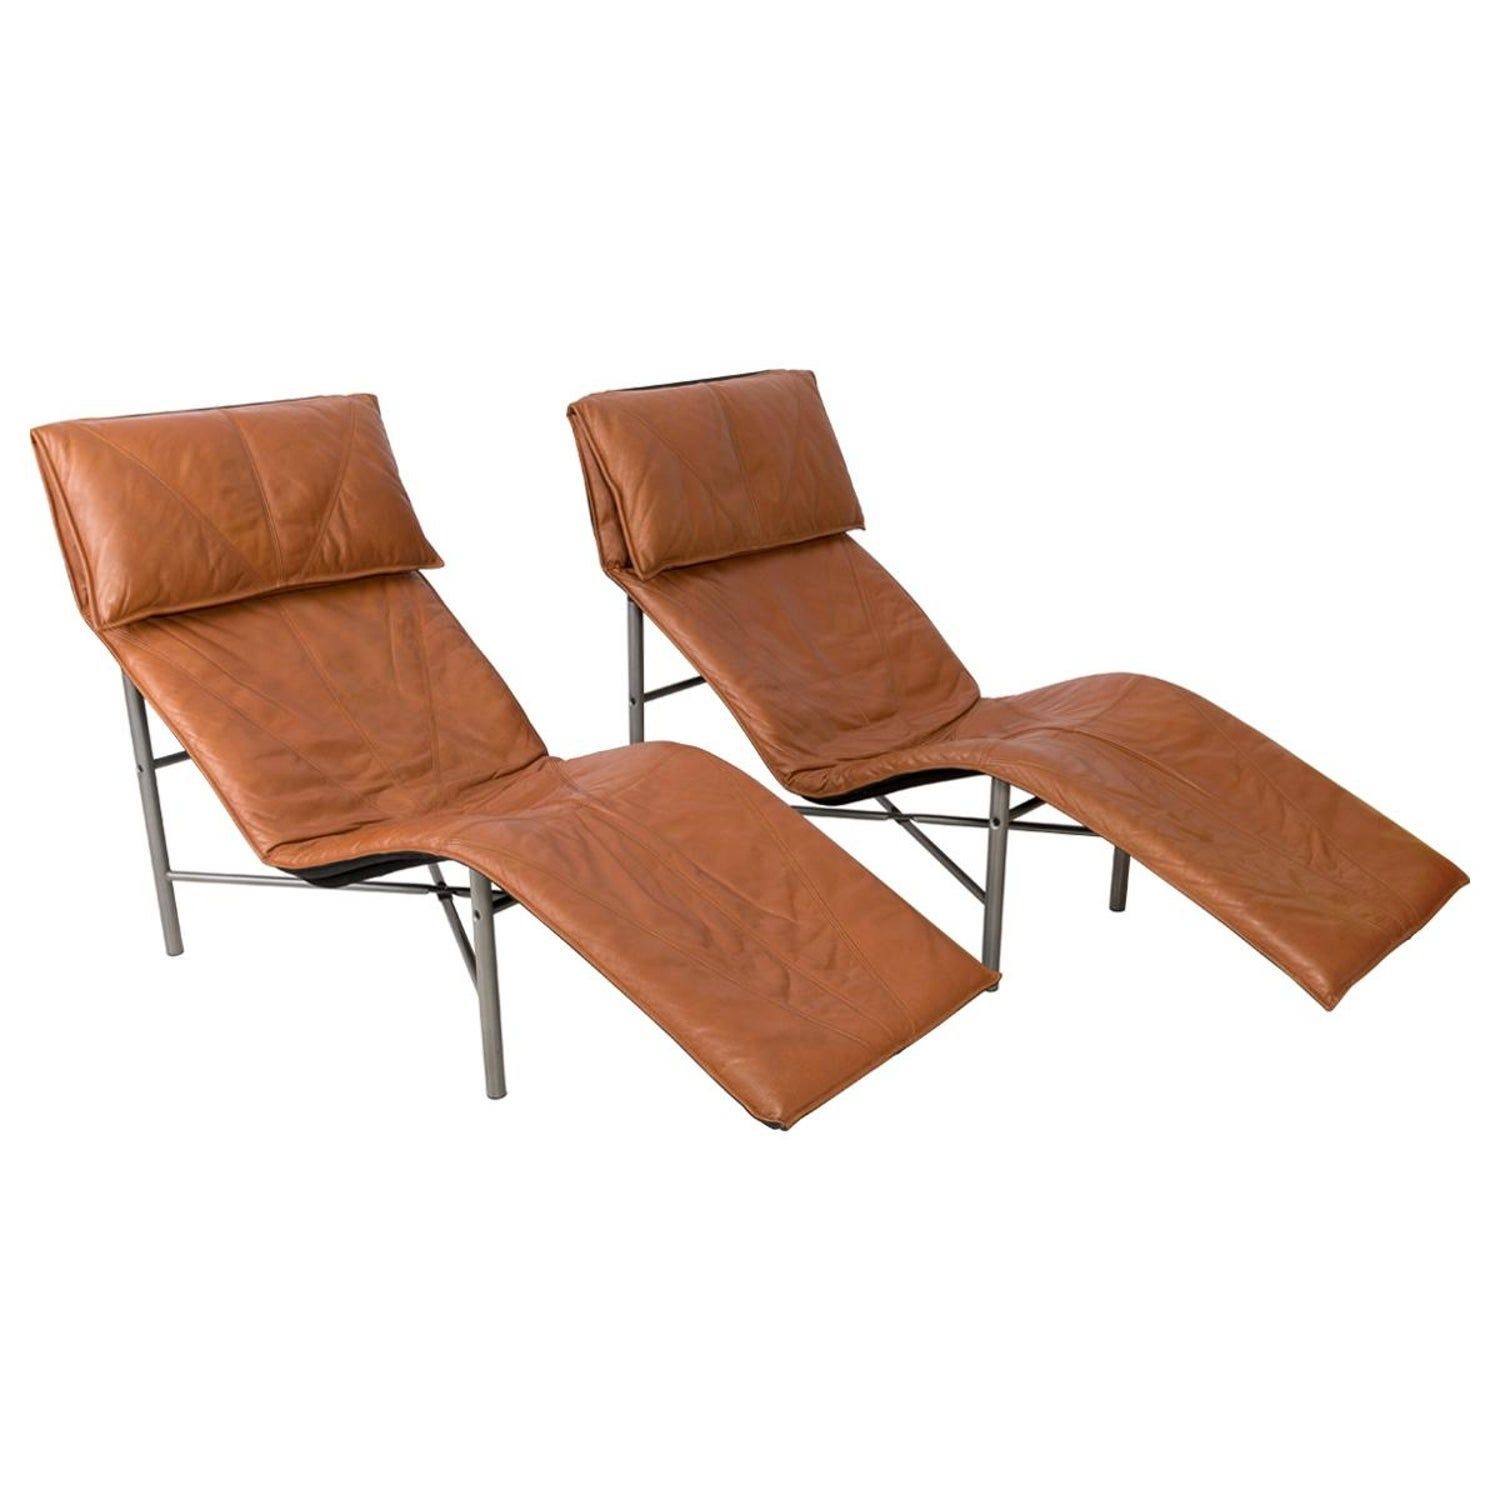 Two Midcentury Danish Modern Leather Chaise Lounge Chairs Tord